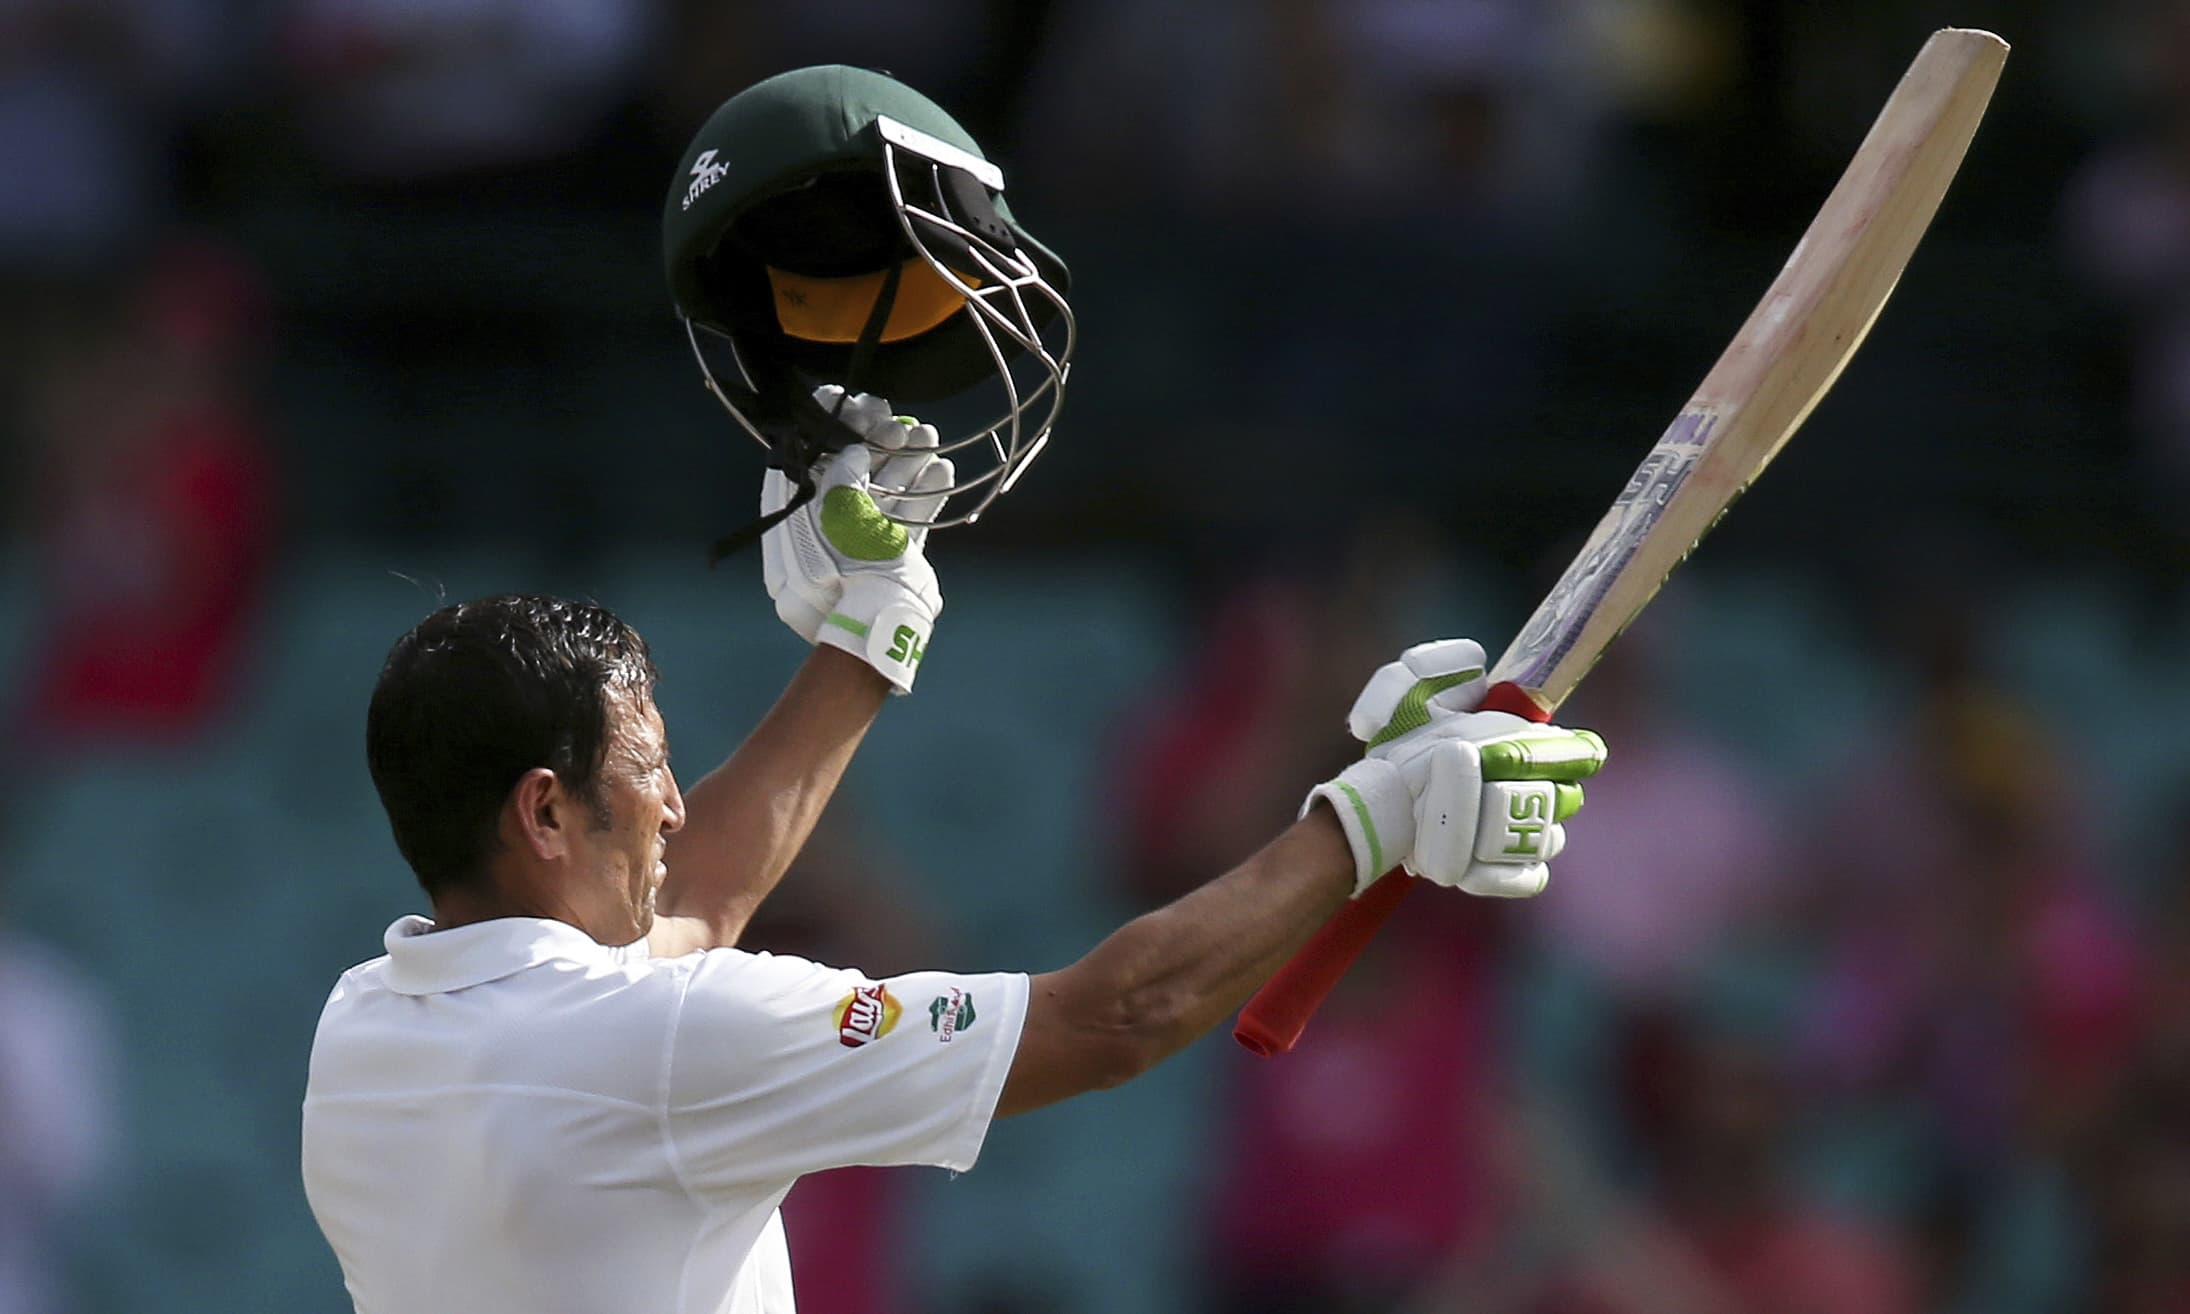 Younis Khan celebrates making 100 runs against Australia. —AP